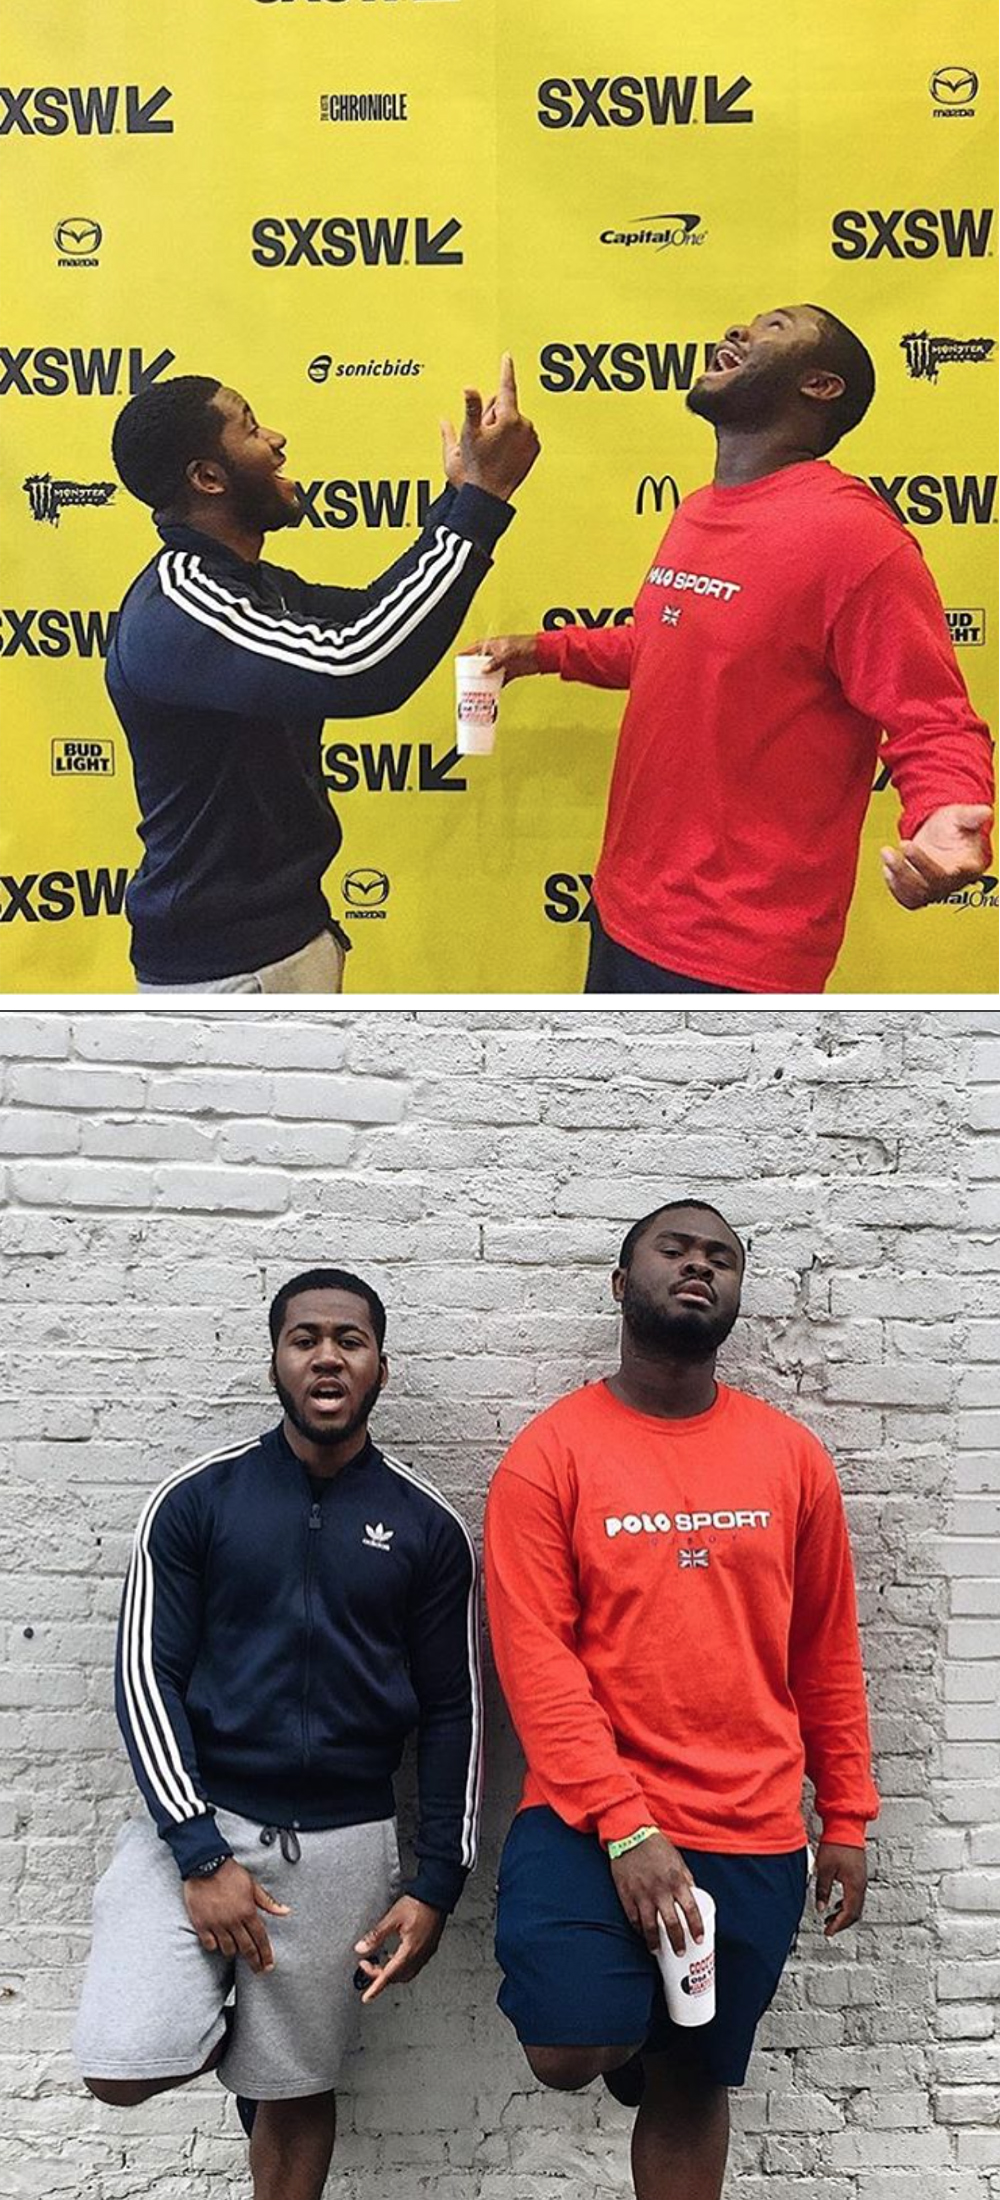 CHECK OUT THESE BOYS DOING THINGS @808INKMUSIC REPRESENTING OIBOY ACROSS THE POND AT SXSW MUSIC FESTIVAL - WEARING OUR POLO SPORT LONG SLEEVED TEE.